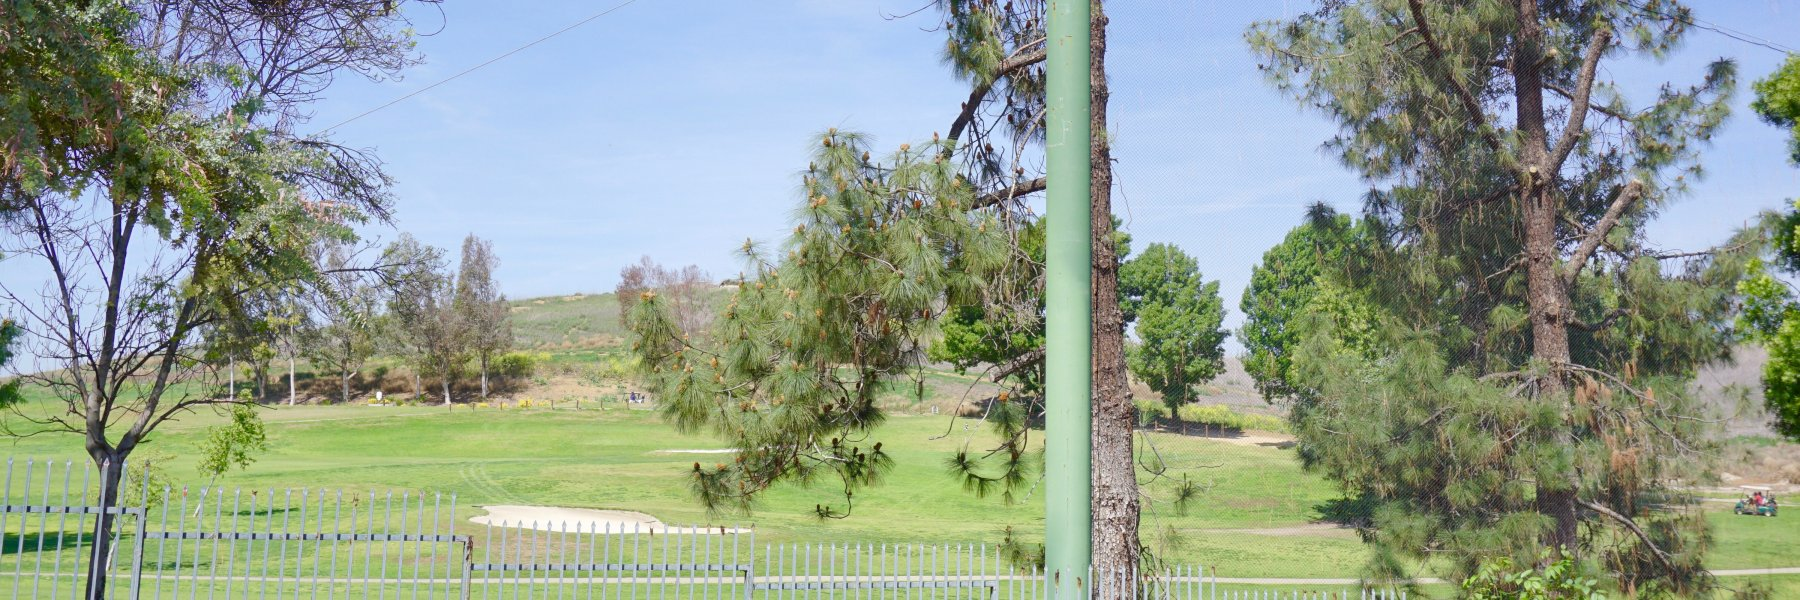 Higgins Ranch is a community of homes in Chino Hills California